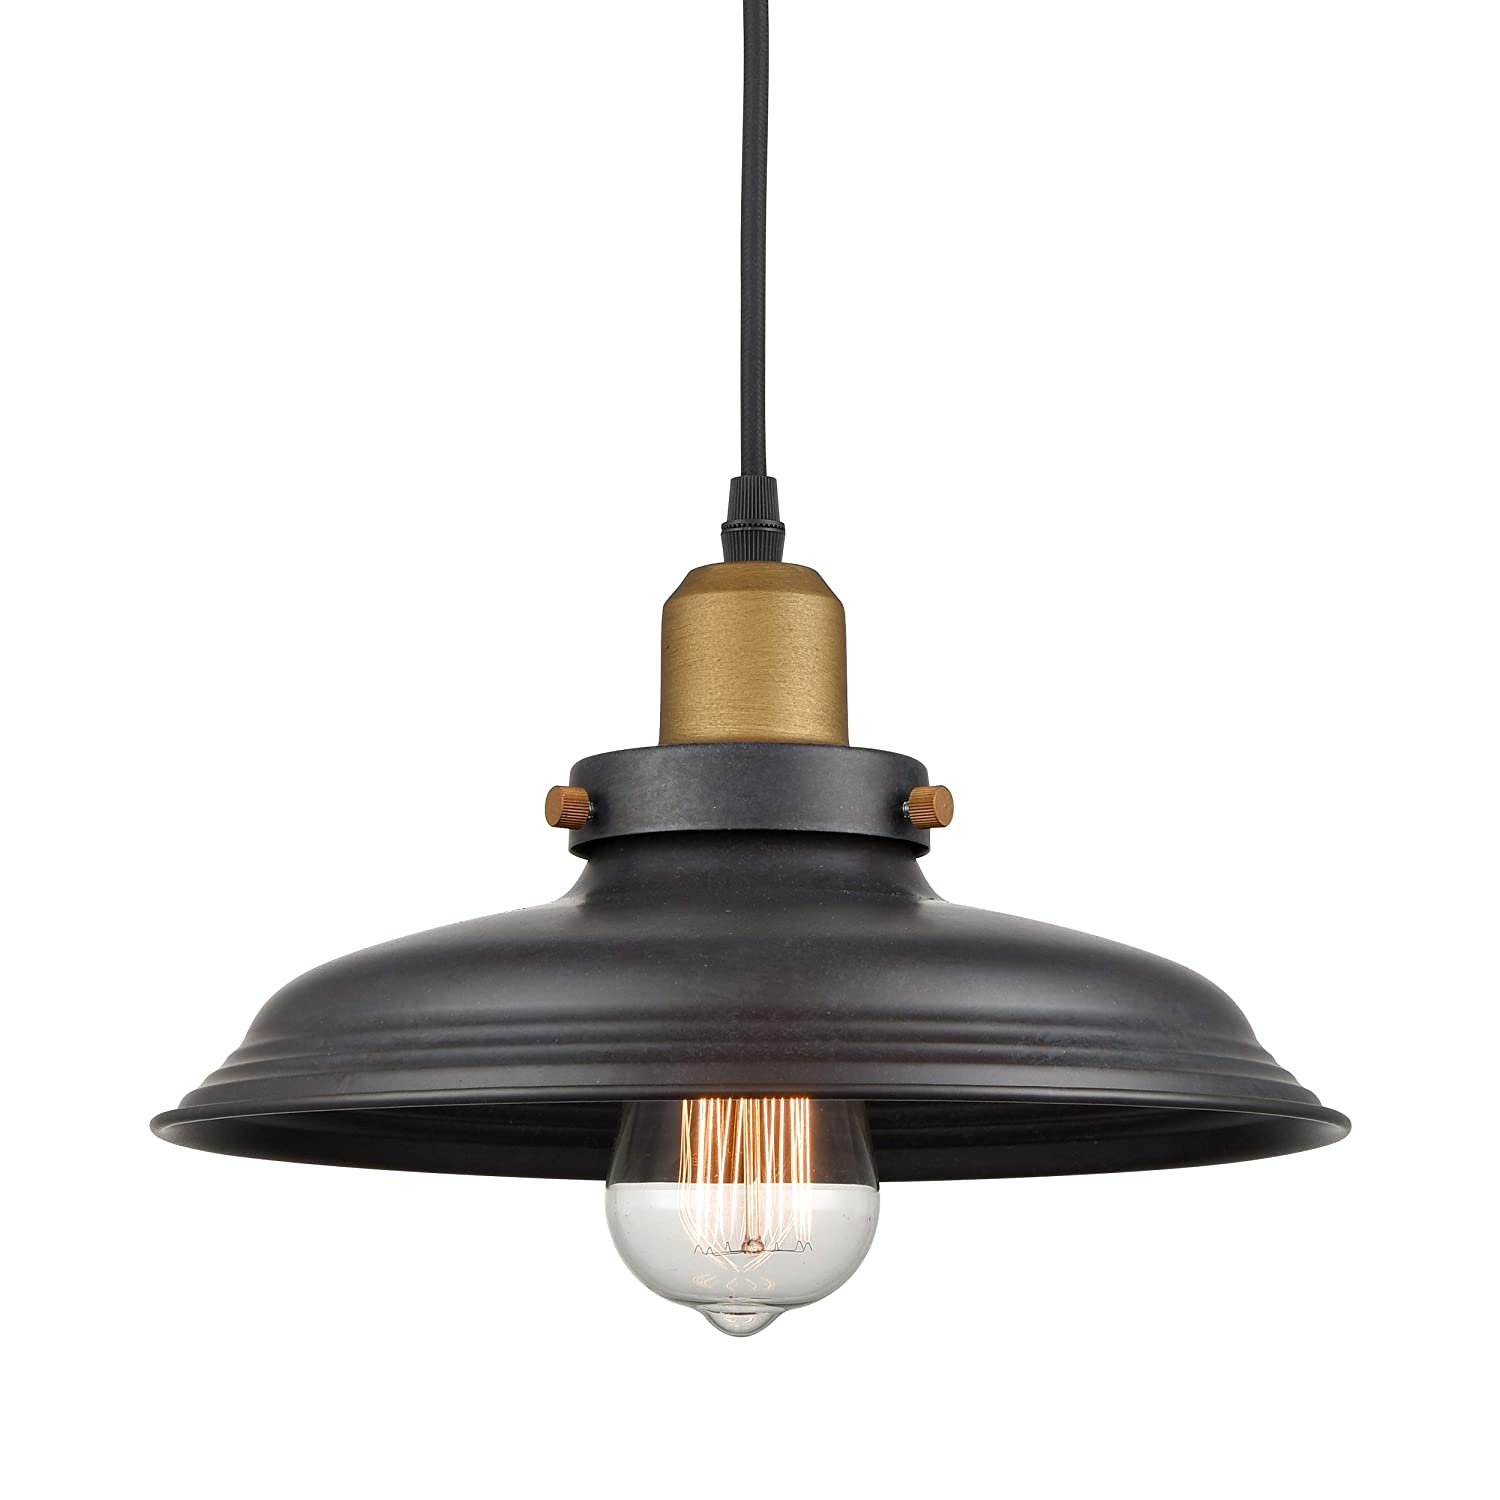 Wildsoul 20031-TG Vintage Barn Metal Pendant Light, Farmhouse Industrial-Style Light Fixture, Graphite Finish